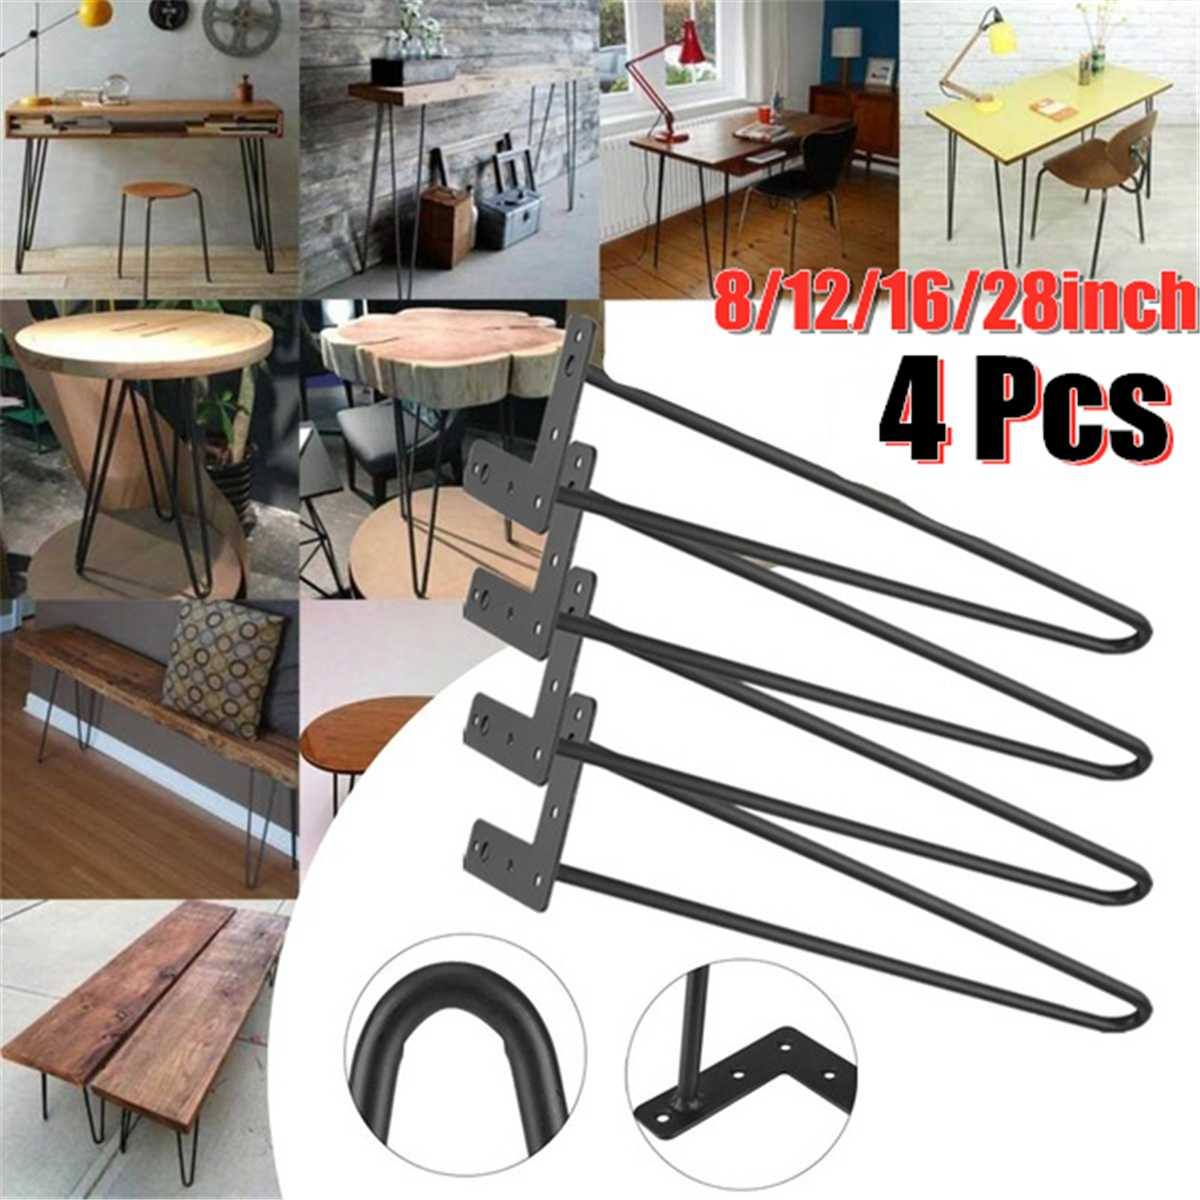 4Pcs Hairpin Table Desk Leg Solid Iron Wire Support Leg For Sofa Cabinet Chairs DIY Handcrafts Furniture Hardware 8/12/16/28inch